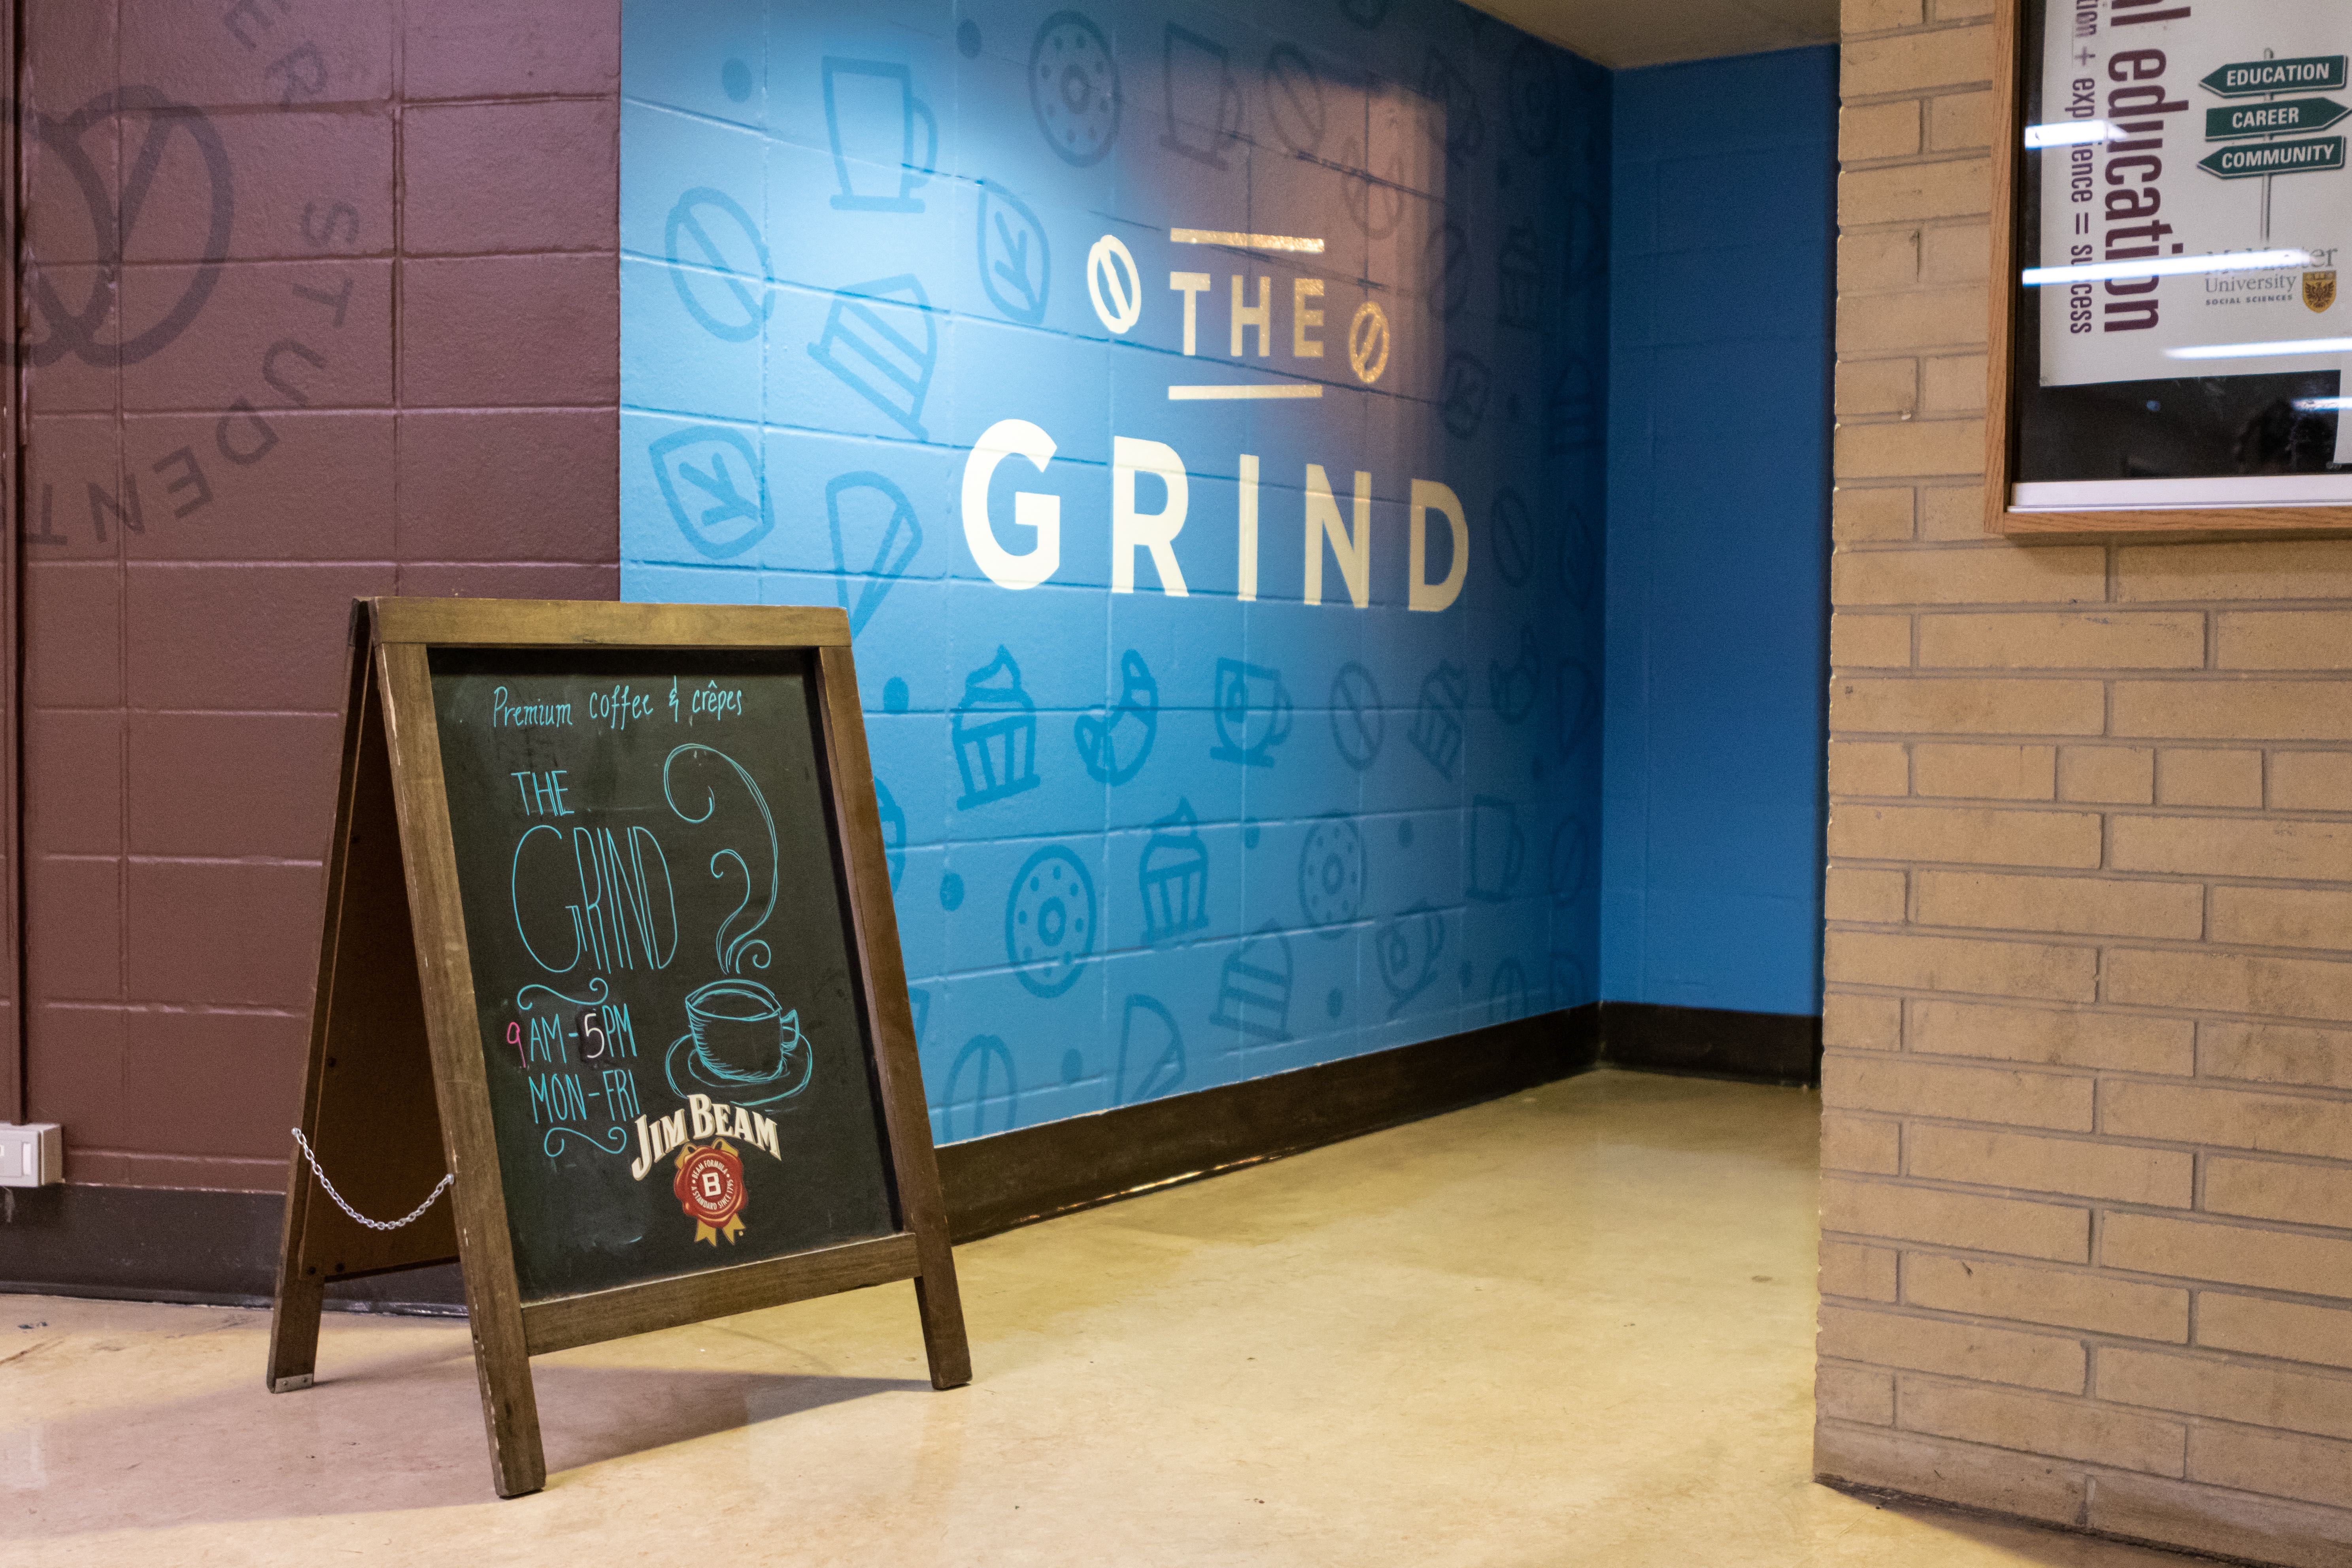 Would you like whipped cream on top? The Grind unveils its expansion plans